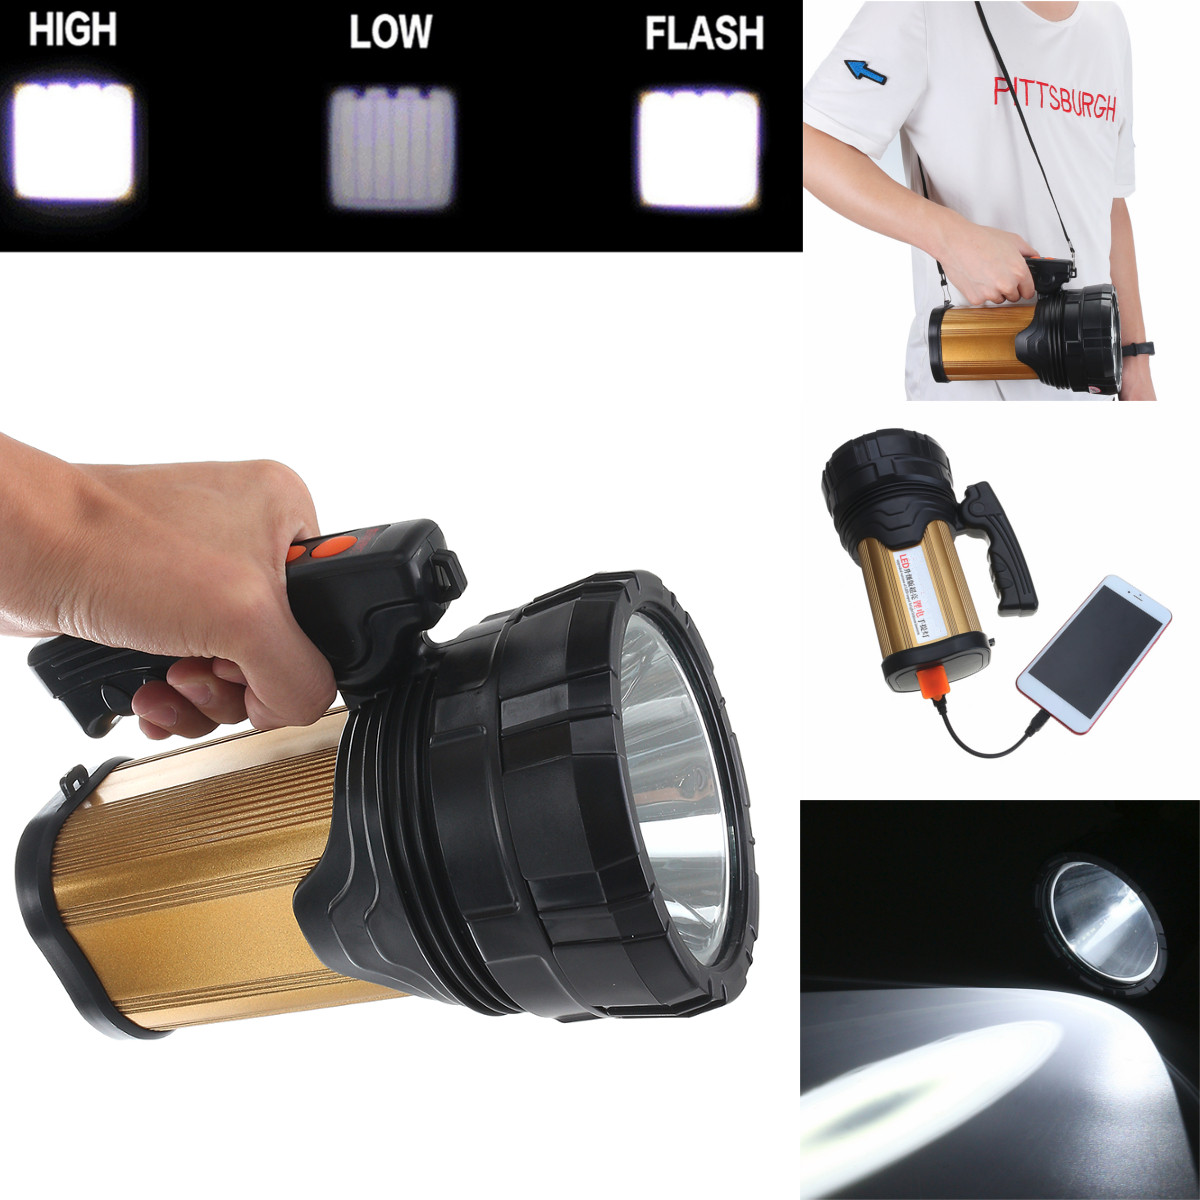 Portable Spotlight Lantern 120W LED Searchlight Rechargeable Handheld High Power Portable Light for Outdoor Camping